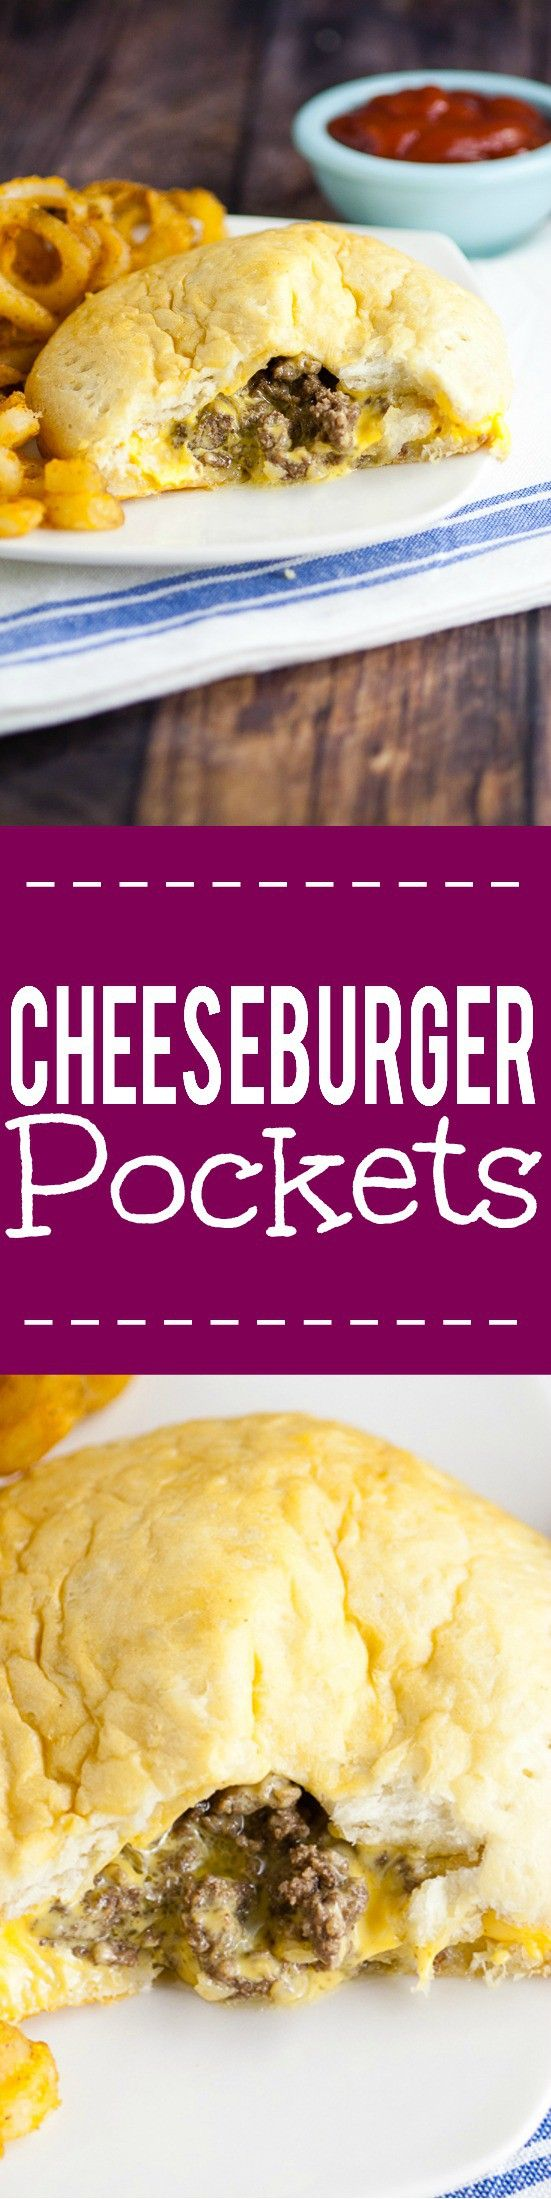 Cheesburger Pockets Recipe -Made in just 30 minutes with 5 ingredients…